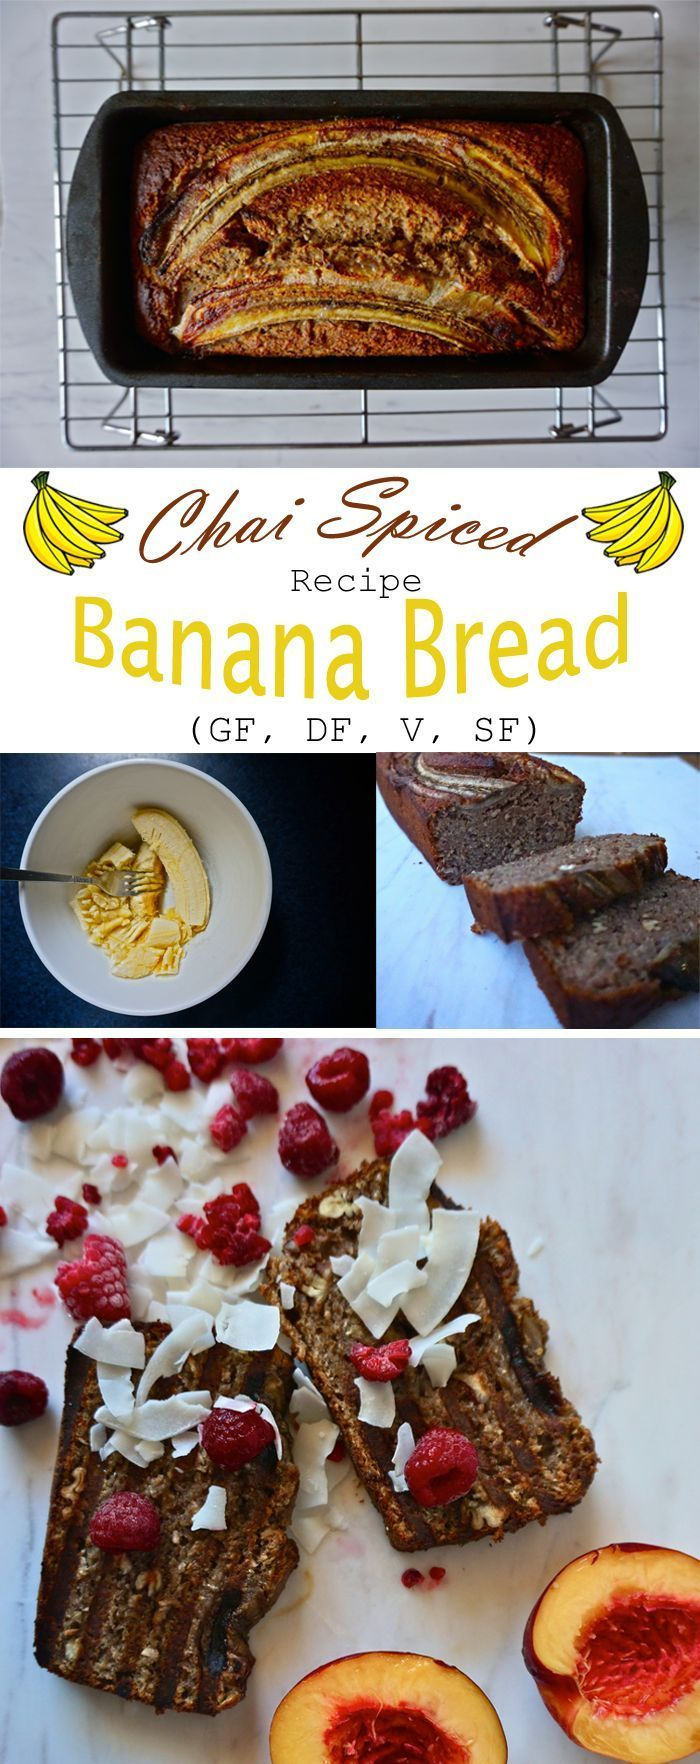 Chai spiced #BananaBread in all its glory + a rich pin to boot. Pin this thing! http://www.sproutlystories.com/solid-sweet-recipes/chai-spiced-banana-bread?rq=banana bread #veganbaking::